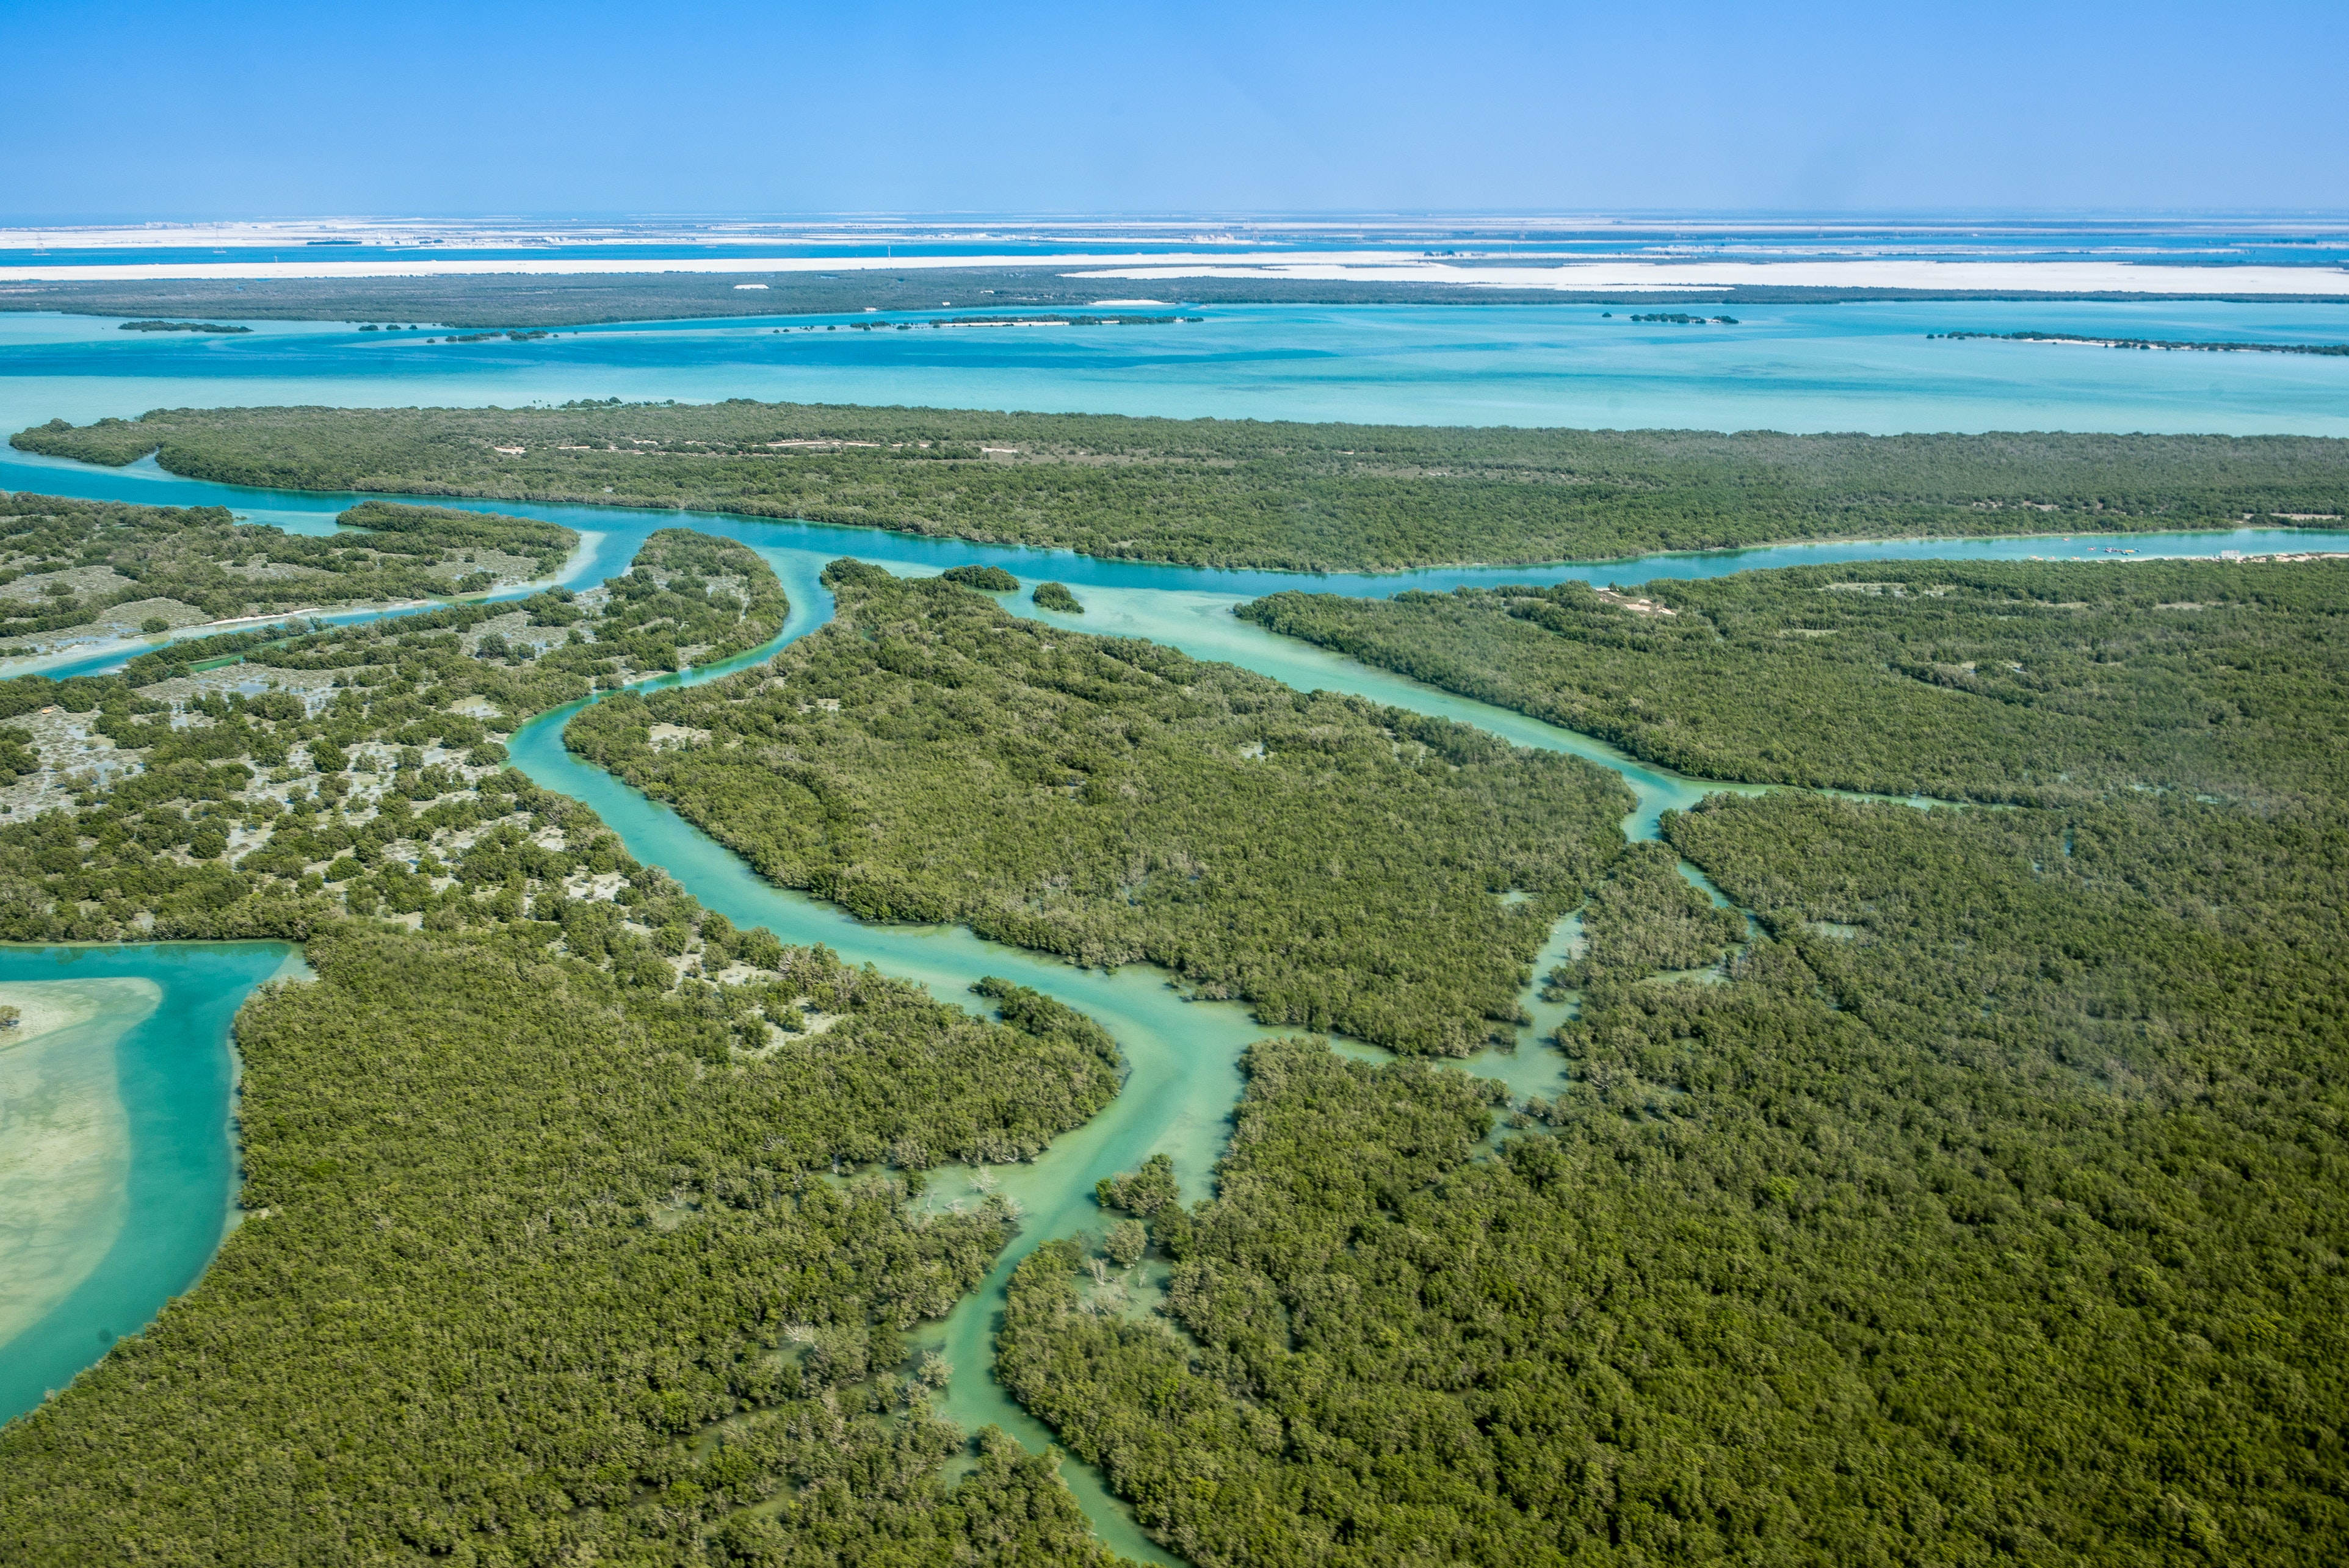 Mangrove forests can rebound thanks to climate change – it's an opportunity we must take